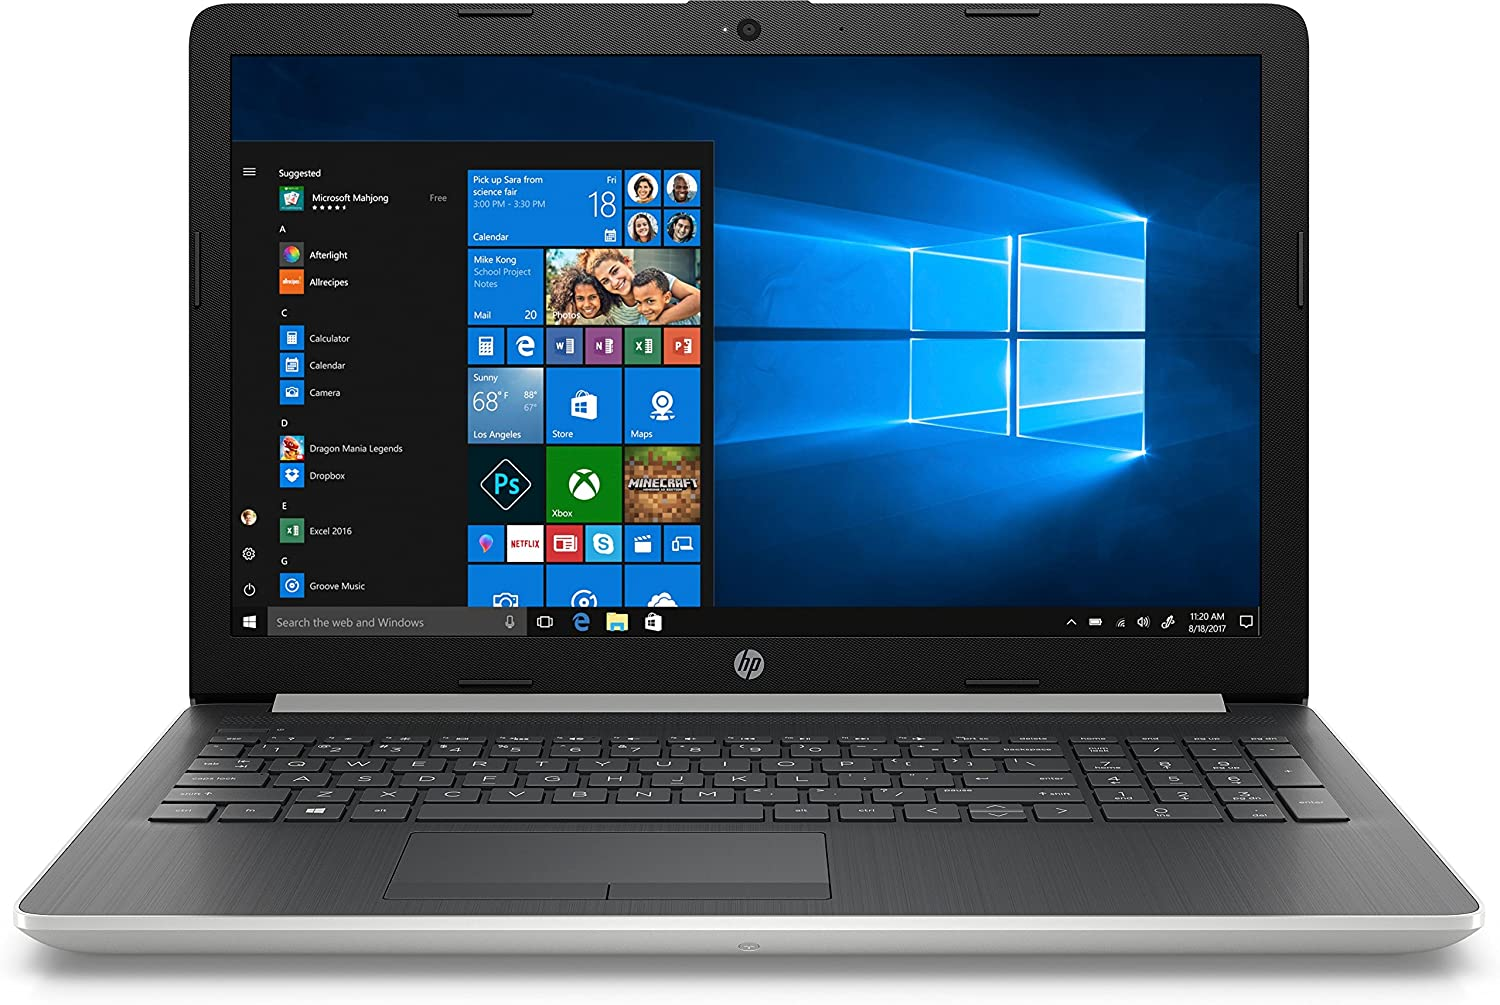 New HP 15.6 HD Intel i3-8130U 3.4GHz 4GB DDR4 1TB HDD 16GB Optane DVD Webcam Bluetooth HDMI Windows 10